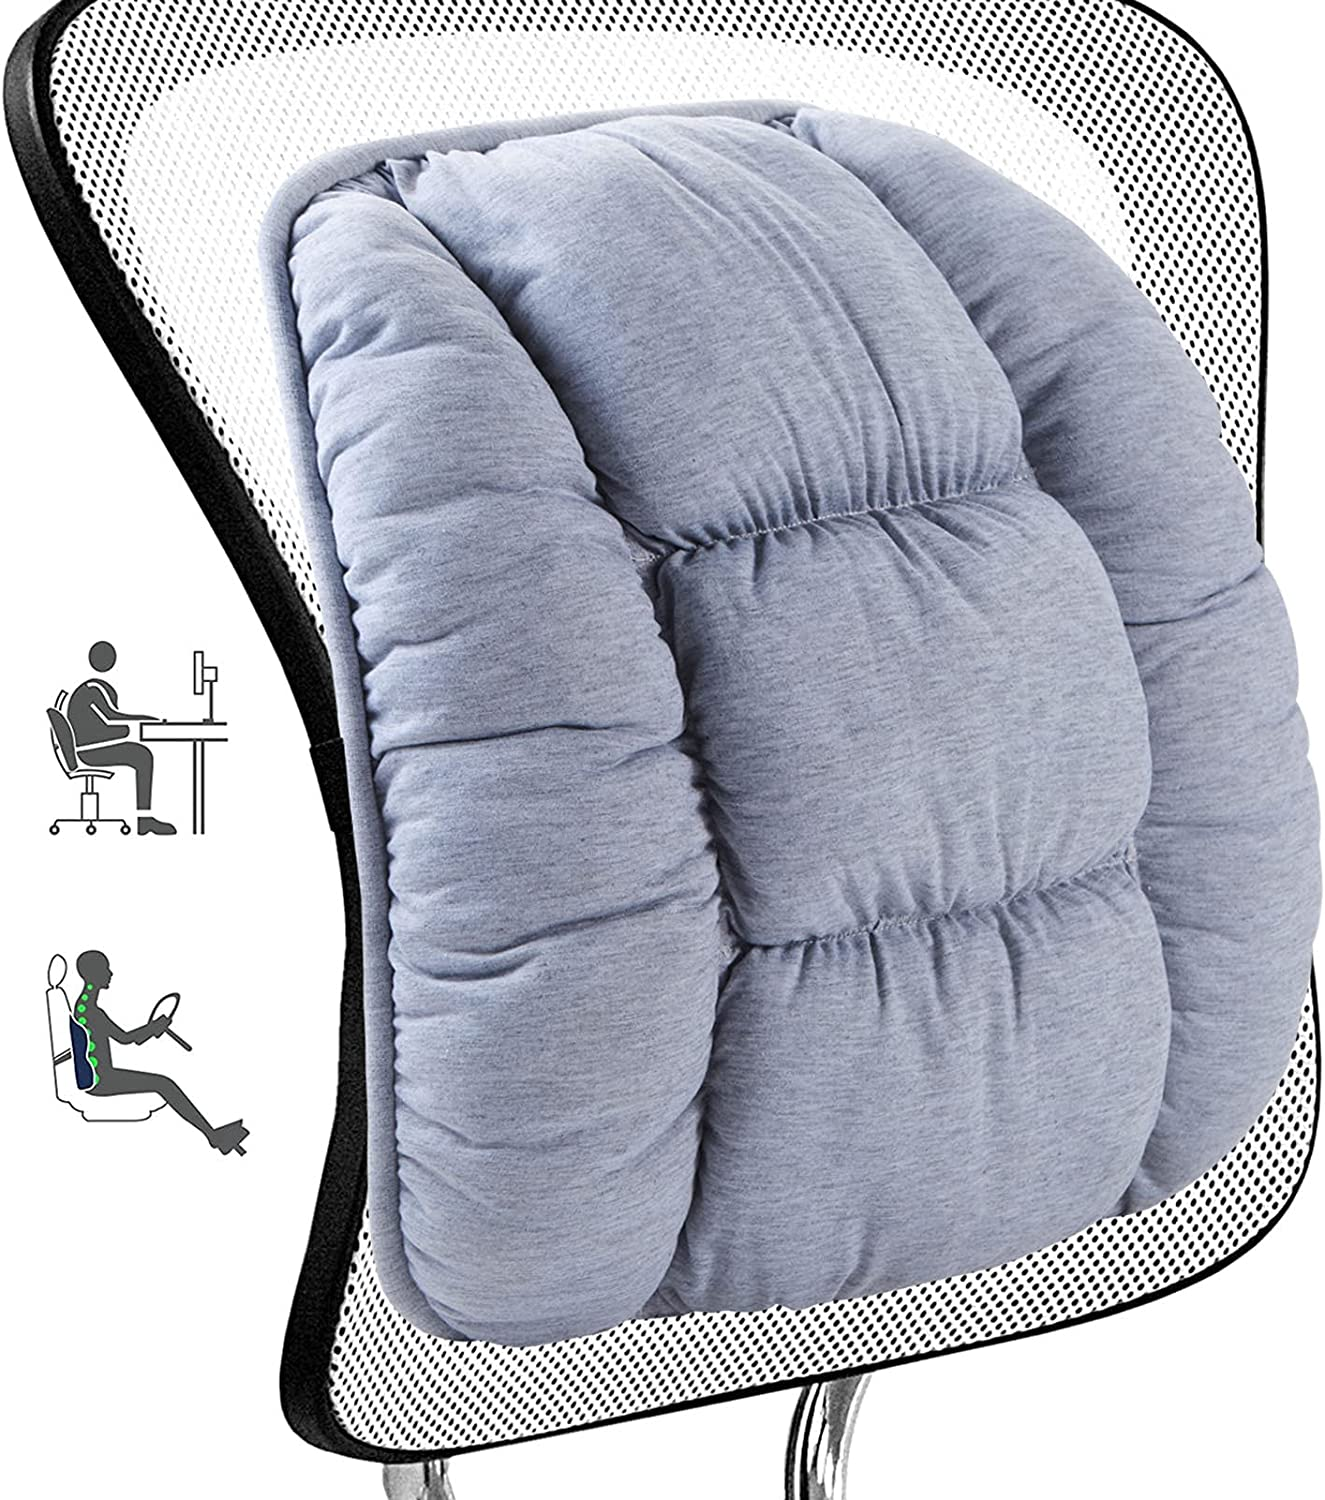 Big Hippo Lumbar Support Orthopedic Super sale period limited Pillow At the price of surprise C Back